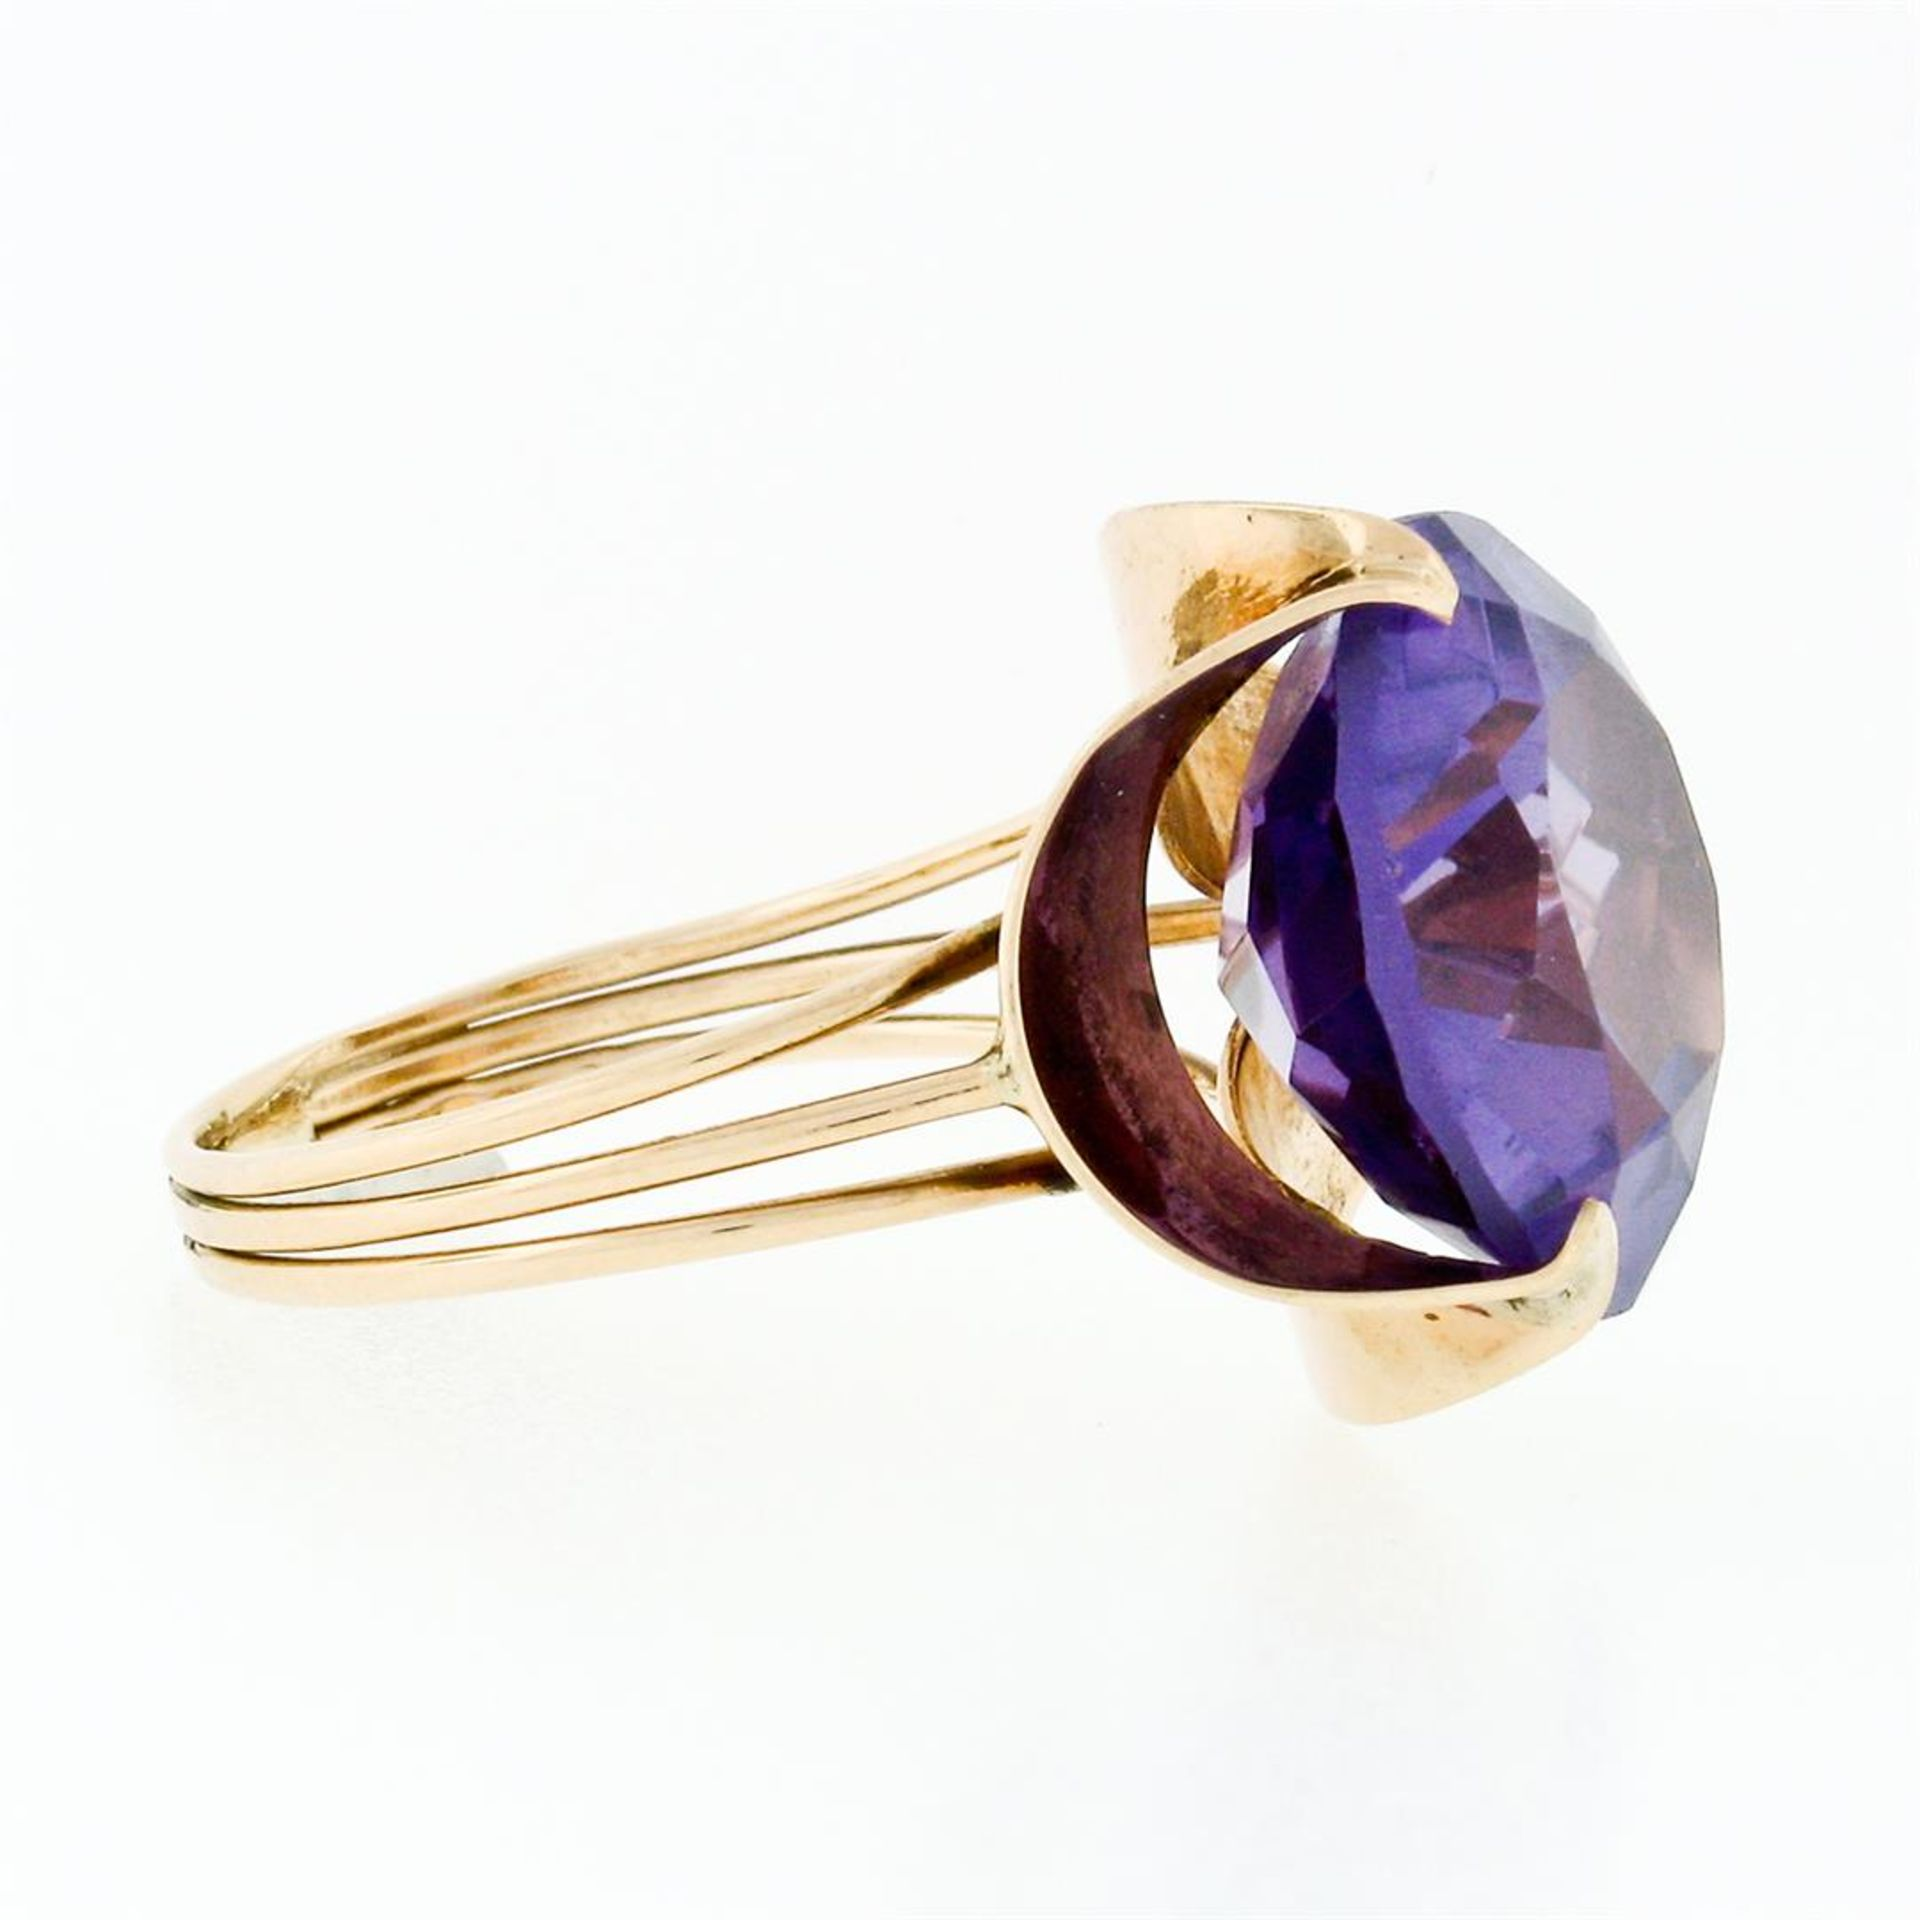 Retro Vintage Handmade 14k Rose Gold 13.7mm Synthetic Alexandrite Solitaire Ring - Image 6 of 8